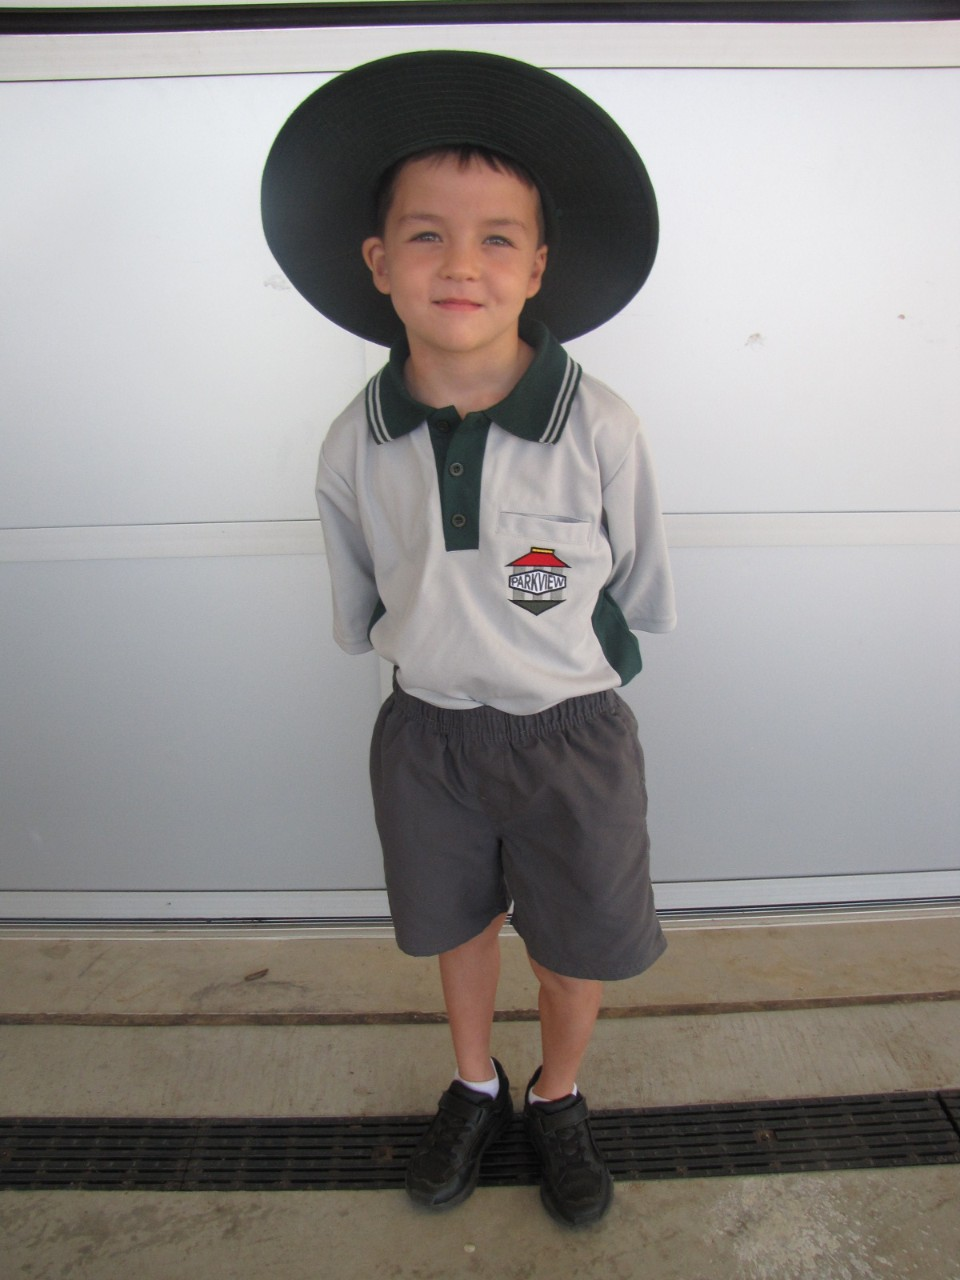 Boys Summer Uniform and hat